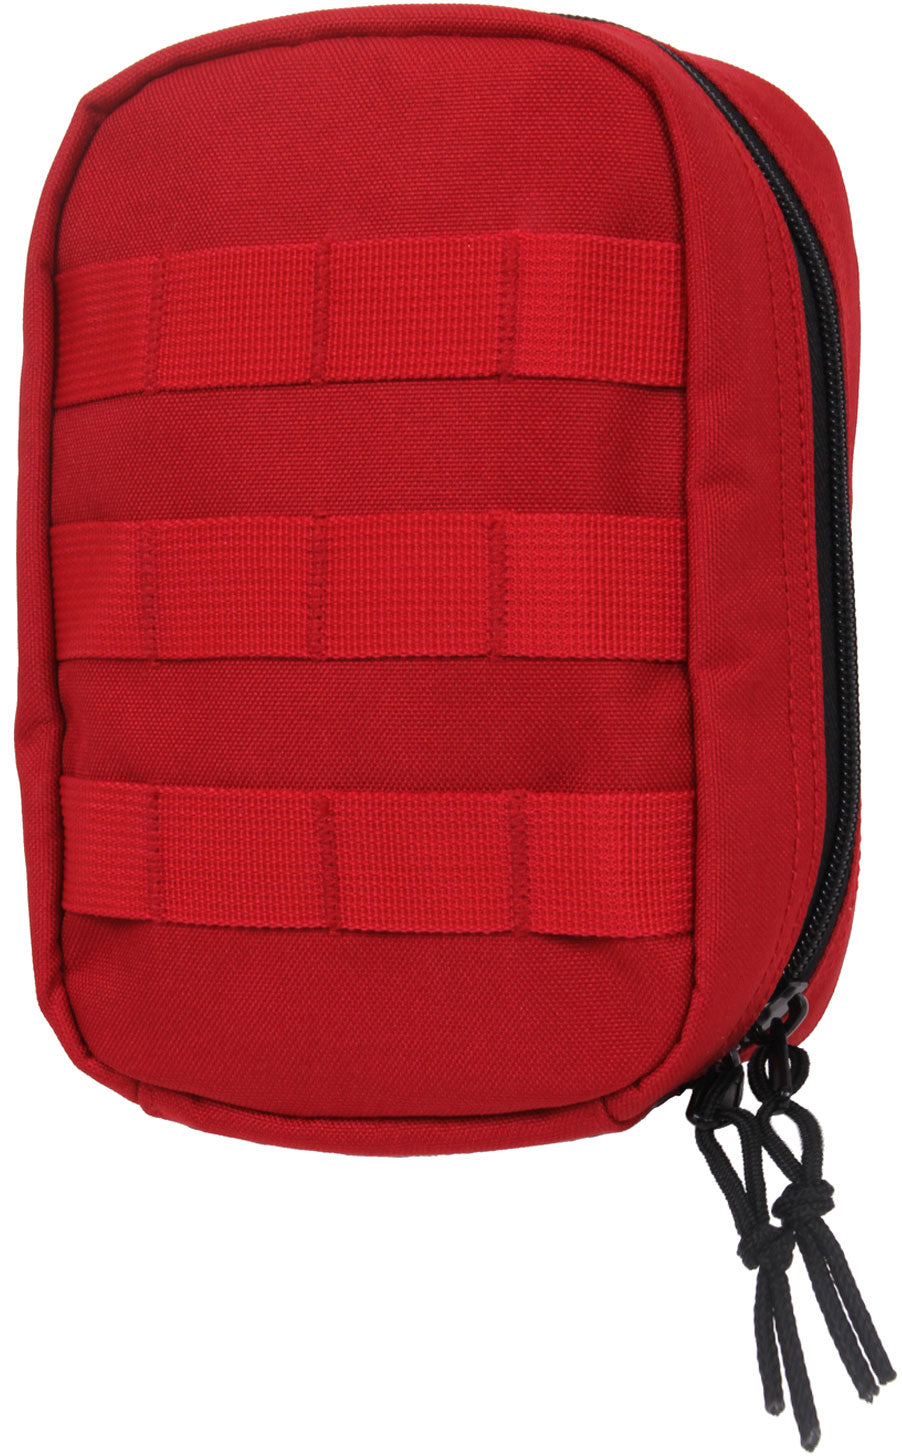 Red - Tactical MOLLE Compatible First Aid Pouch